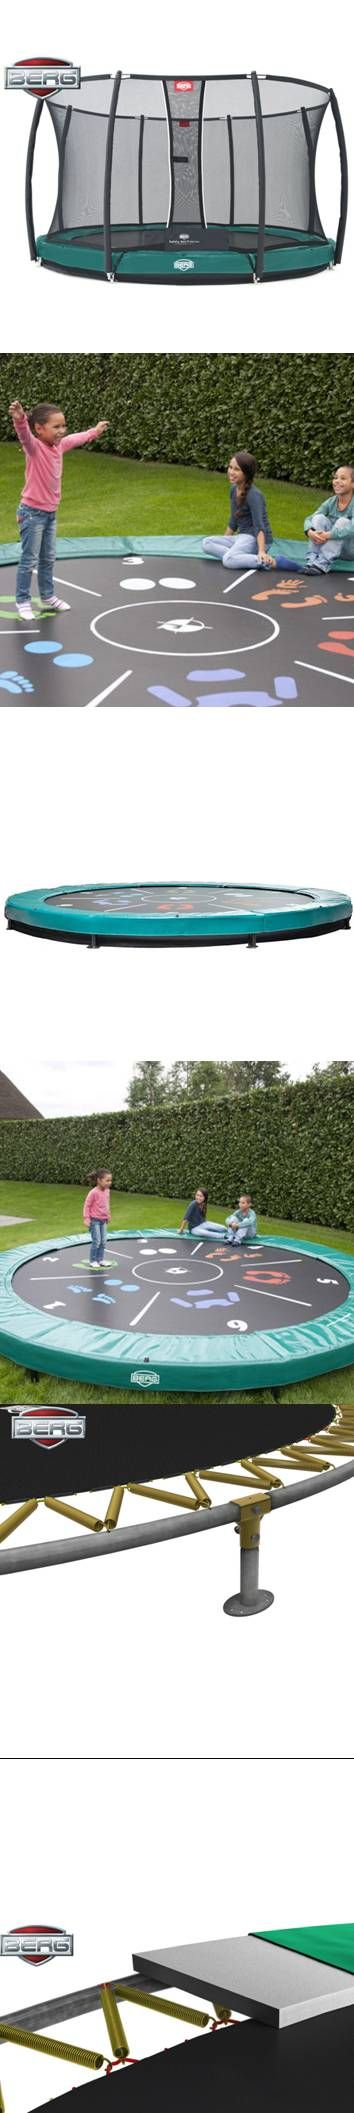 At the top of BERG's range, the Elite In-Ground Trampoline is available in a range of sizes that offer the pinnacle in bouncing technology and comfort.